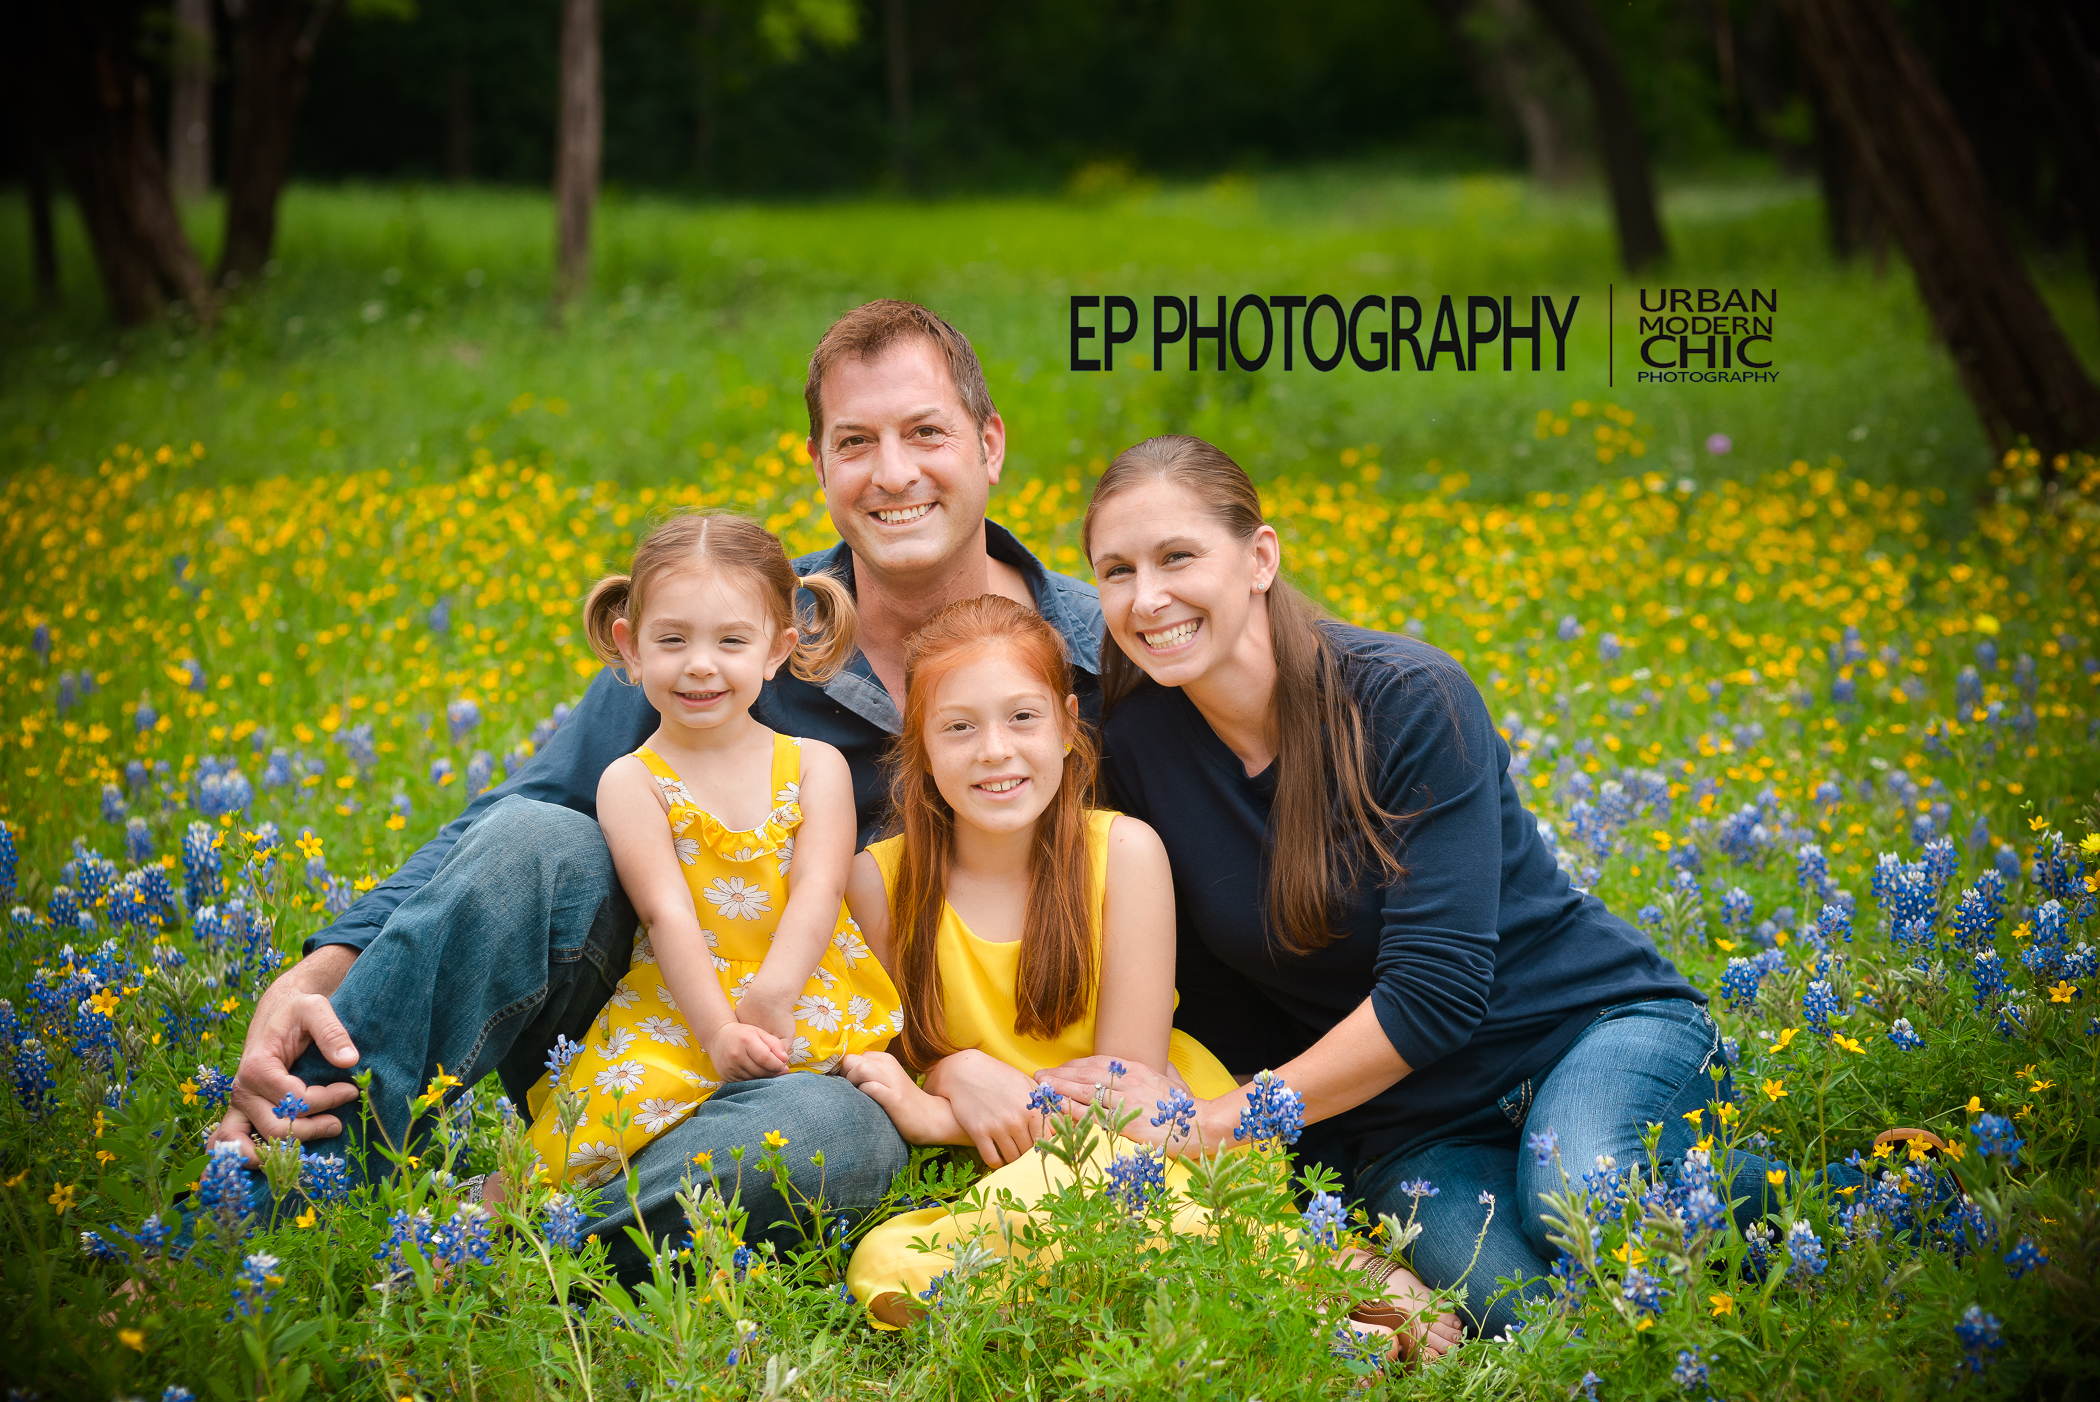 bluebonnet photograph, austin texas by ep photography